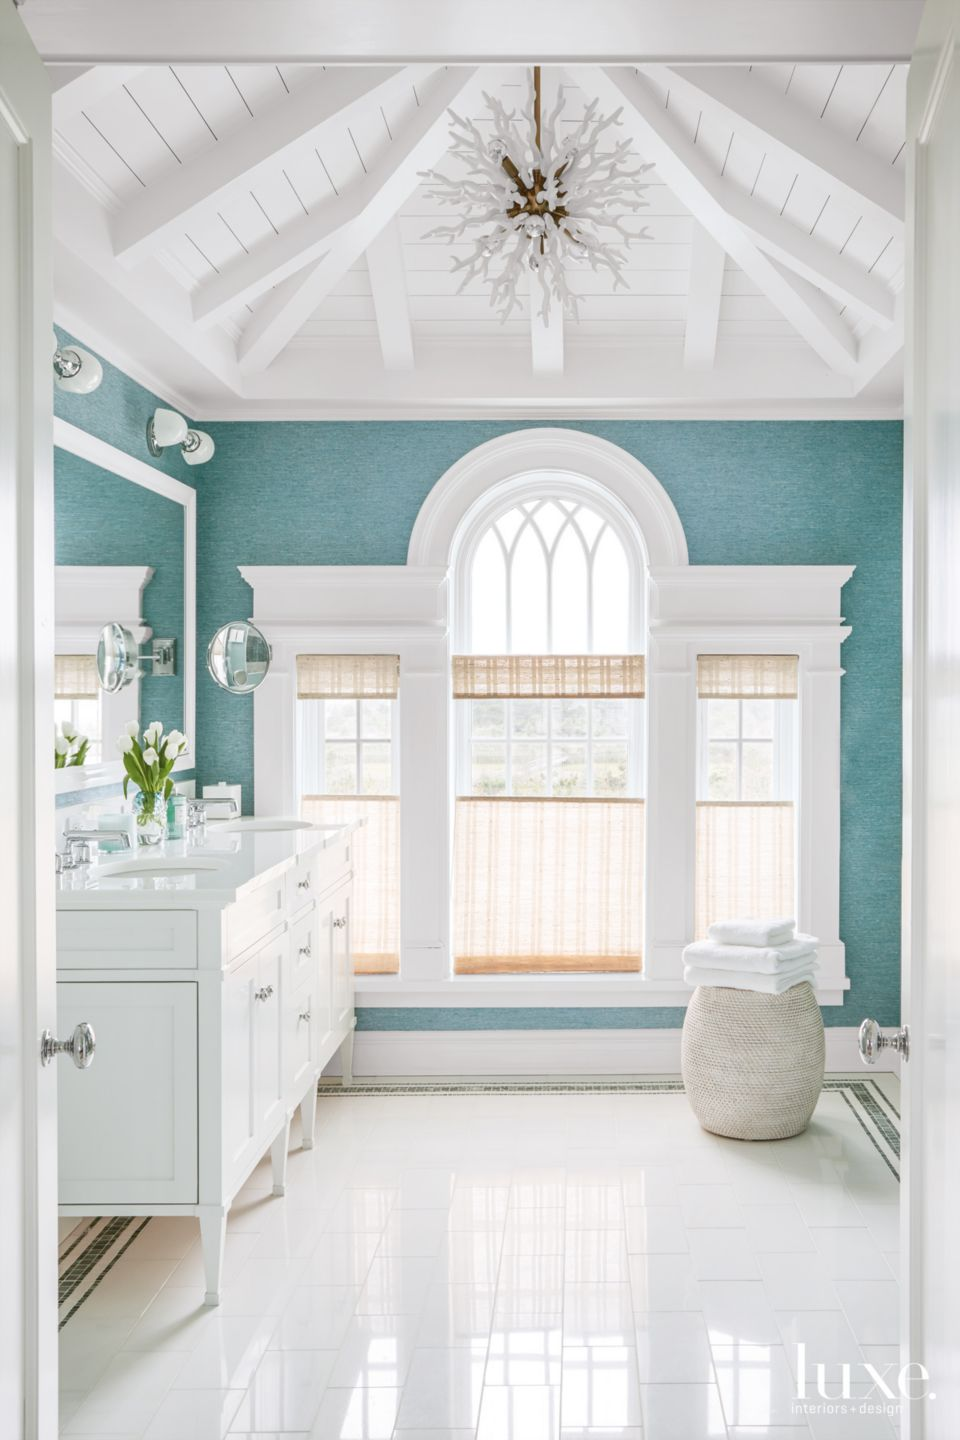 Contemporary Turquoise Bathroom with Coral-Like Chandelier